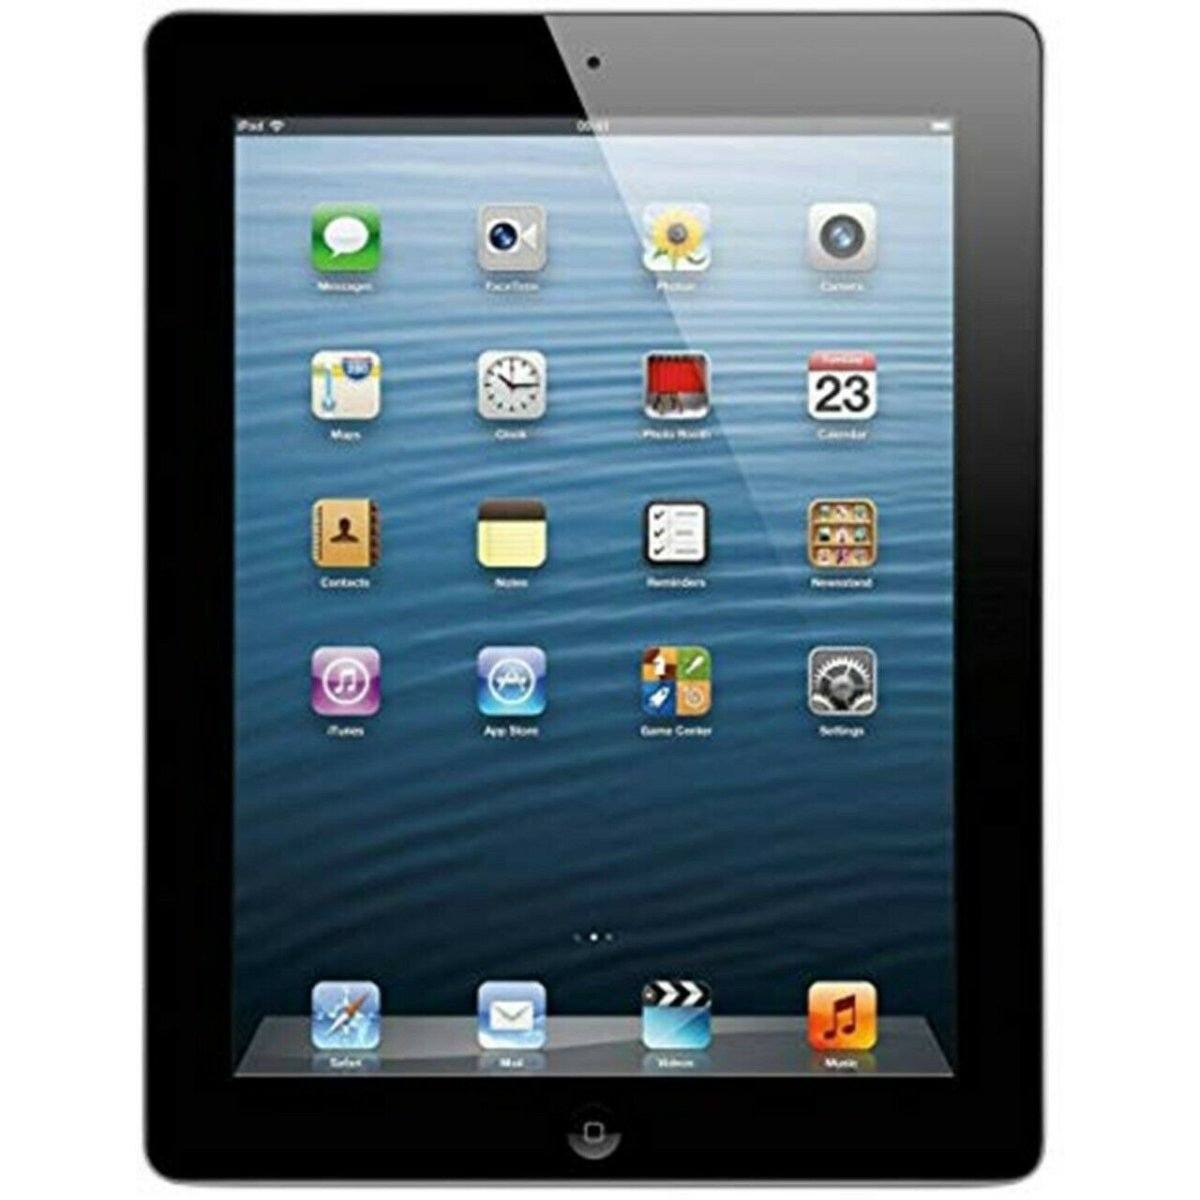 Apple iPad 4th Gen (WiFi Only) - Fix Or Cell Now Device Shop